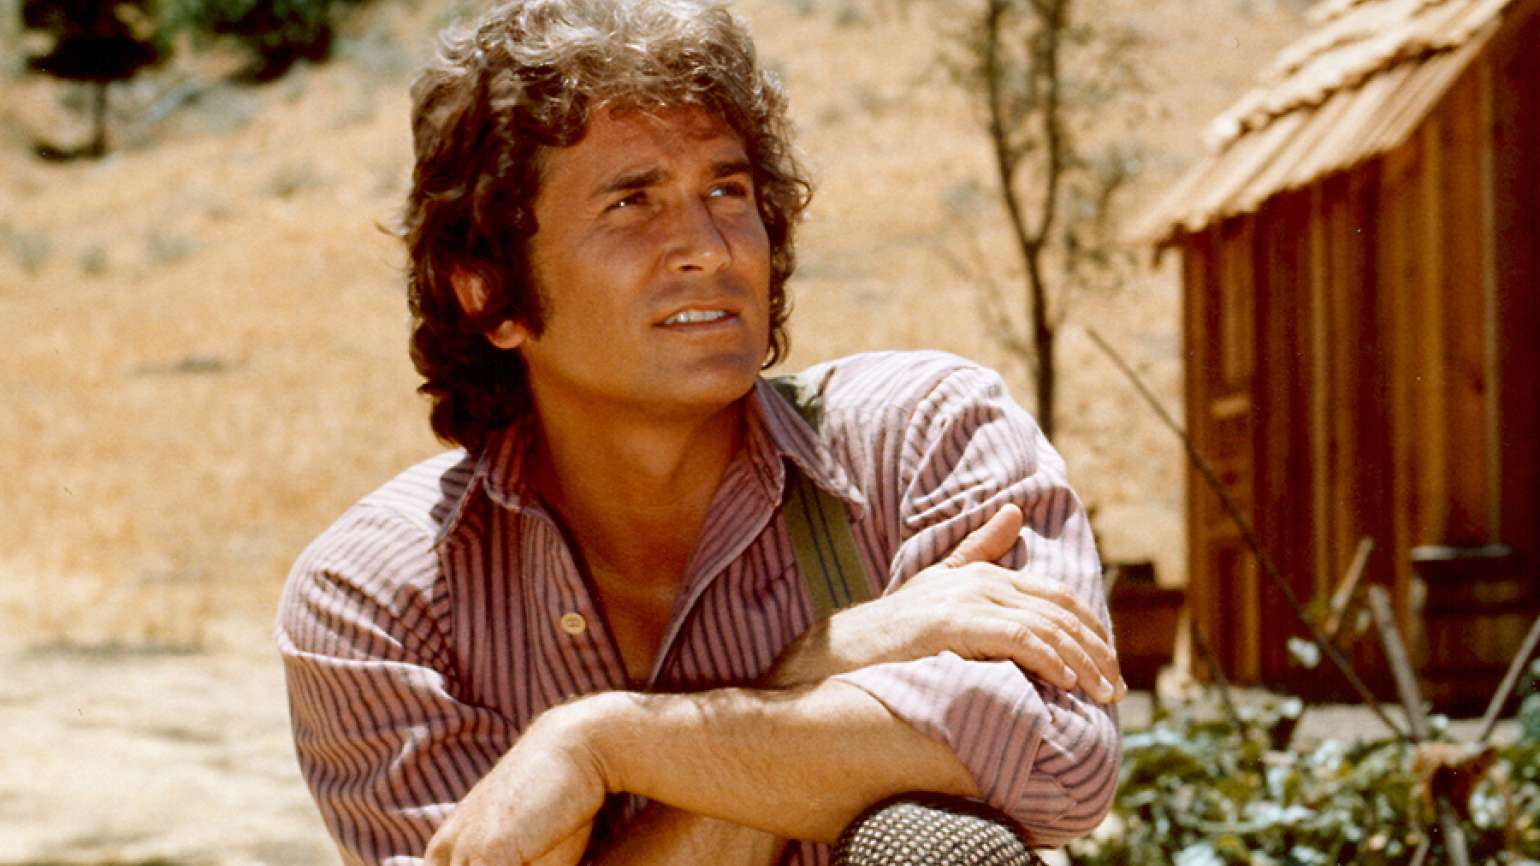 Michael Landon as Charles Ingalls on Little House on the Prairie